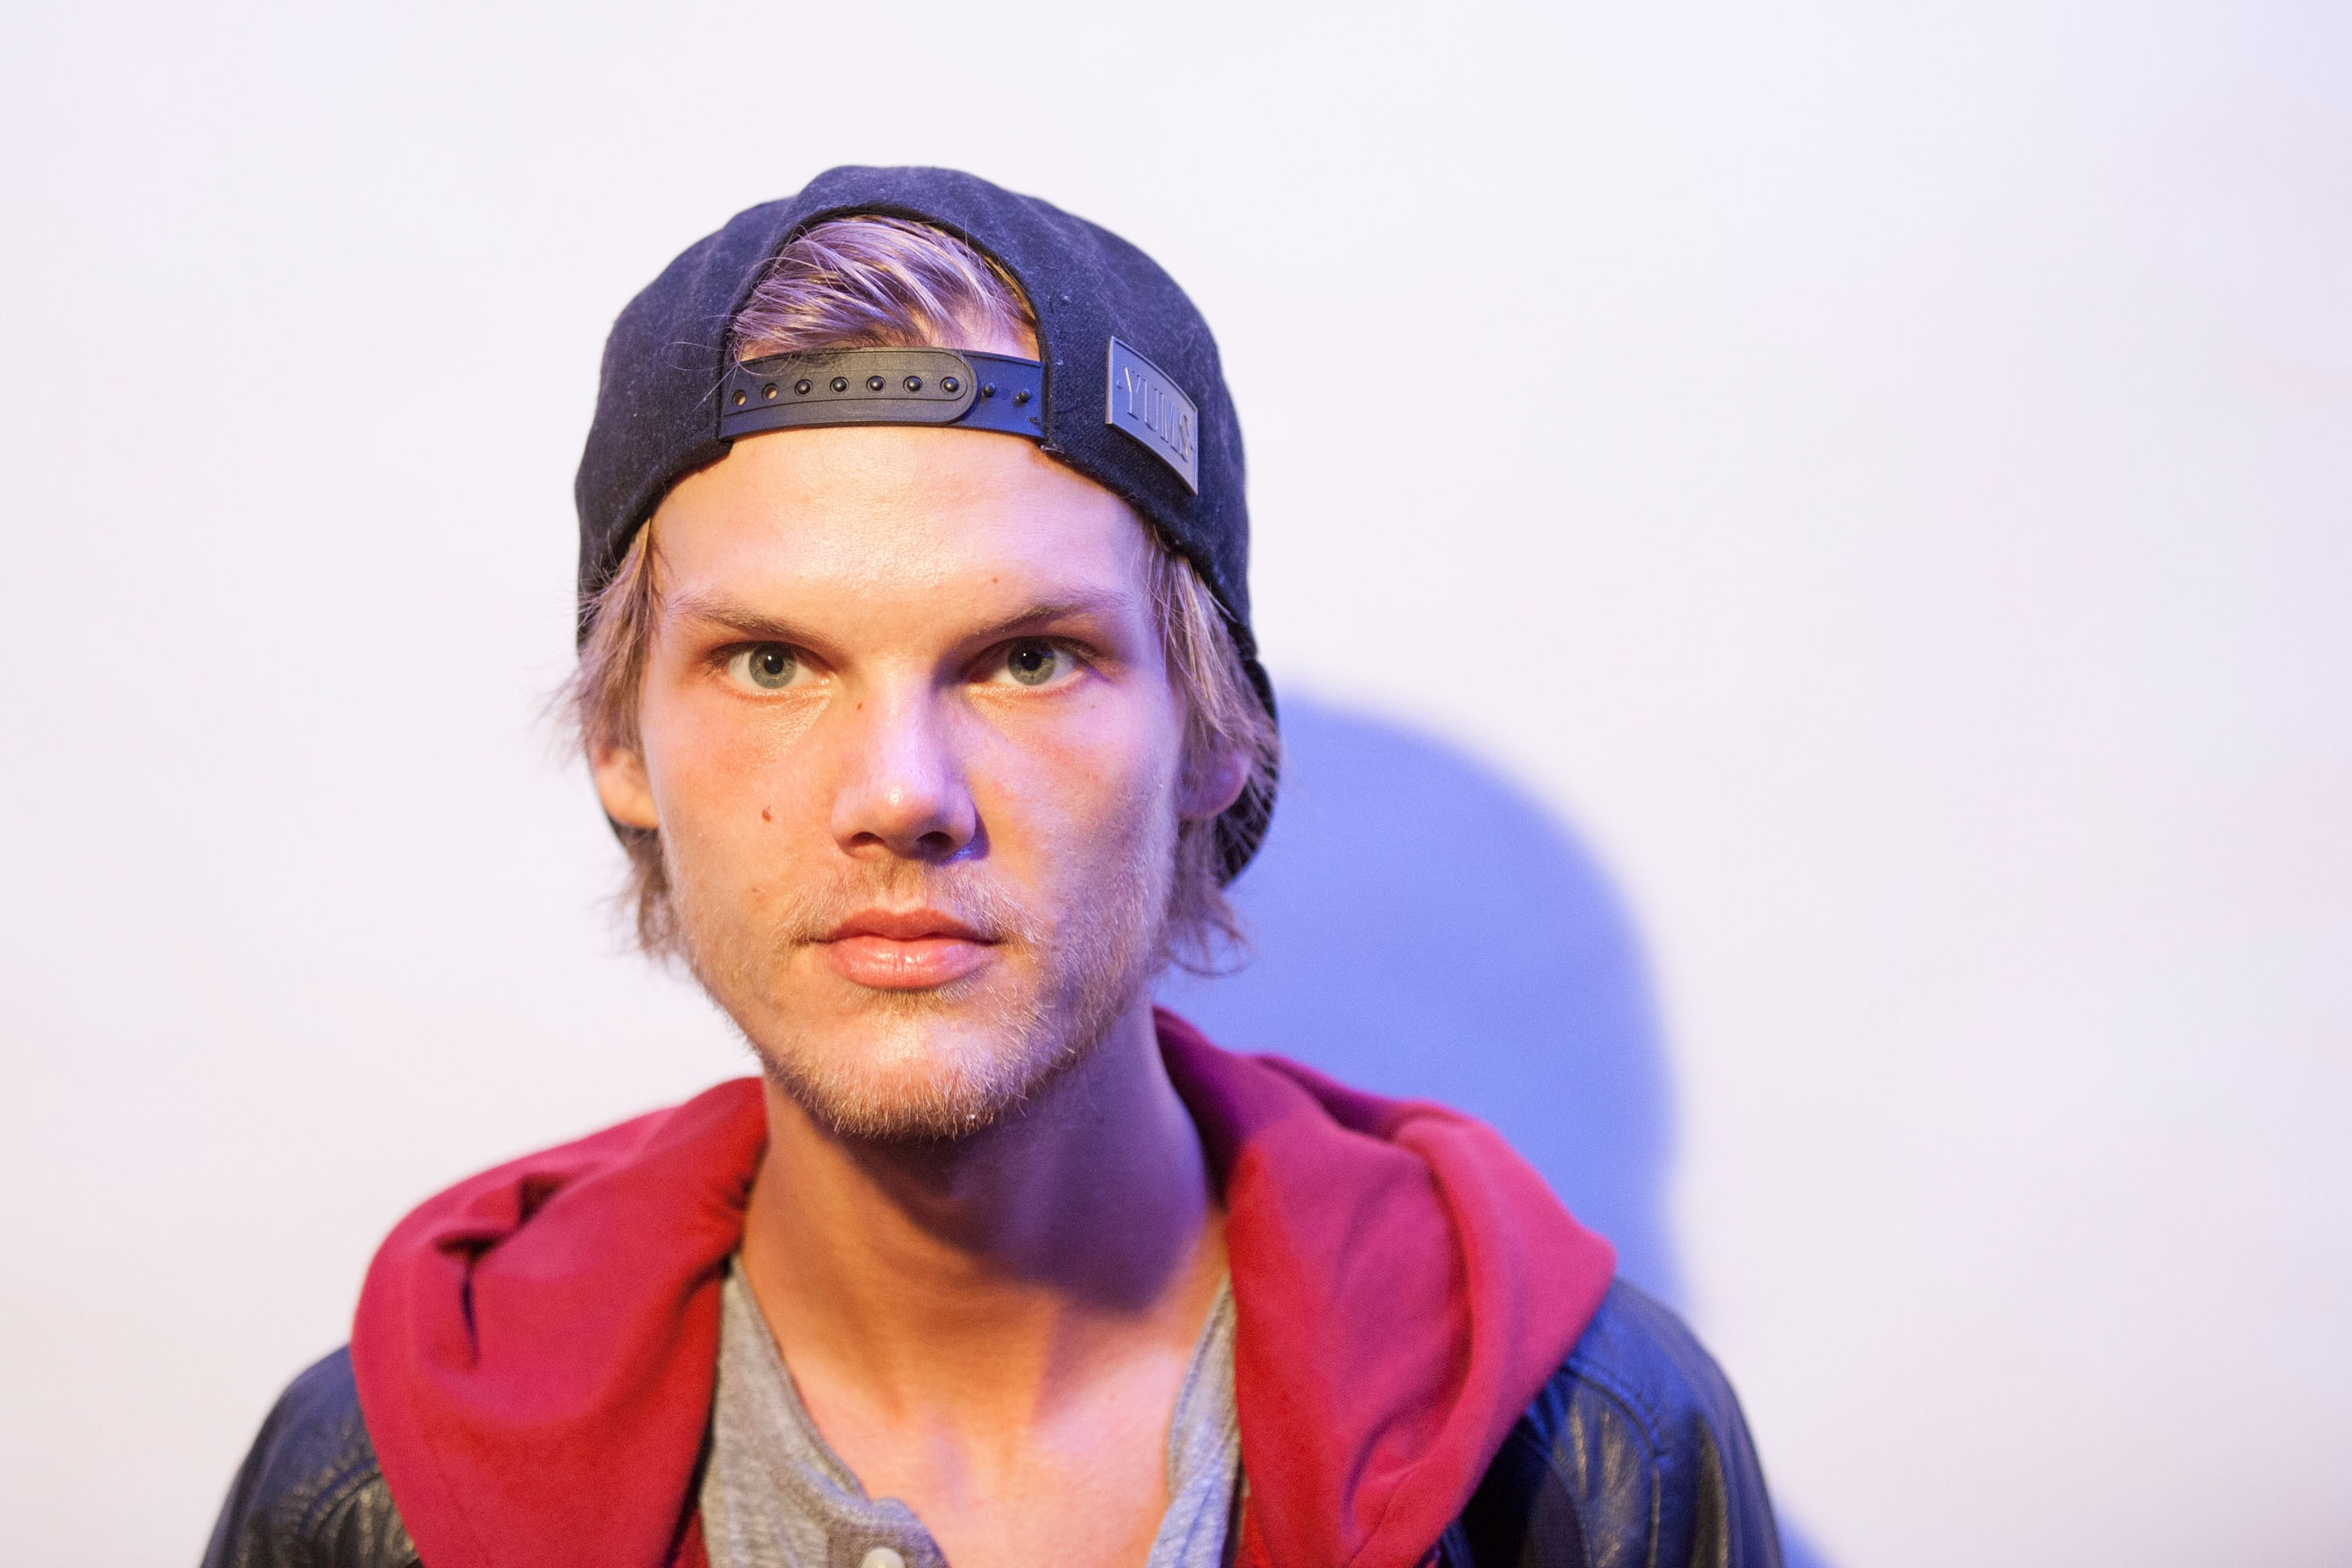 avicii-father-opens-up-suicide-prevention